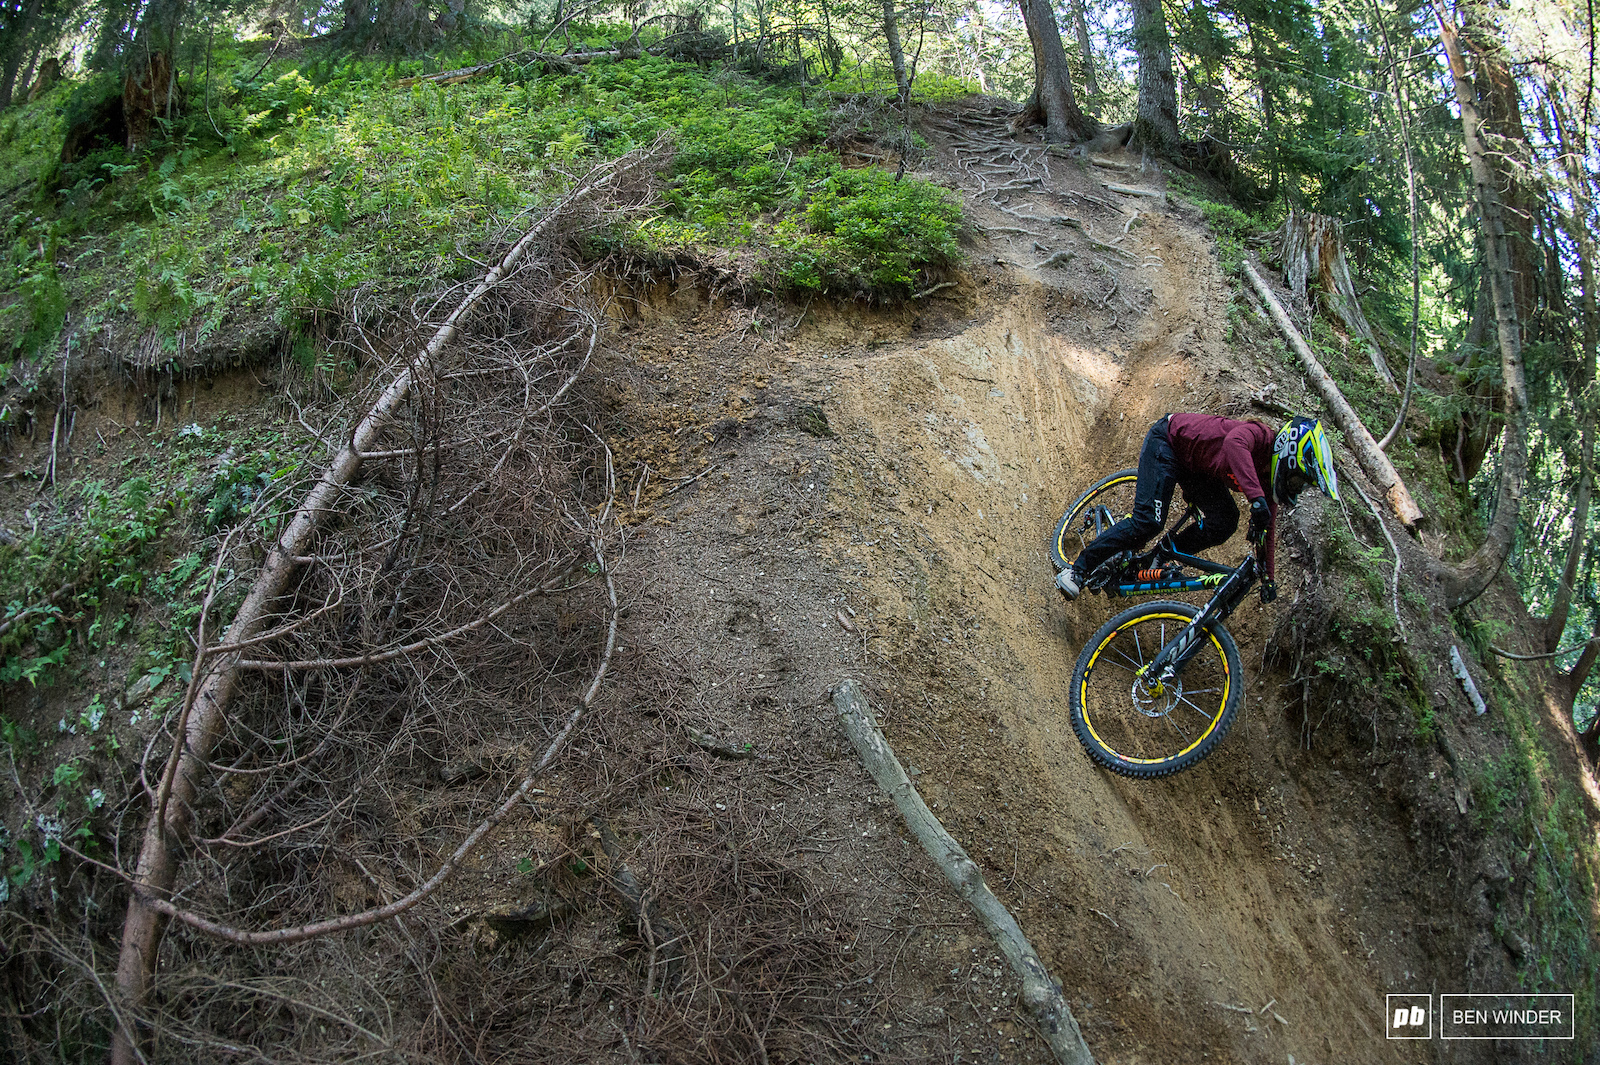 Chatel is known for it s big jumps but they have a load of more natural steep technical trails.